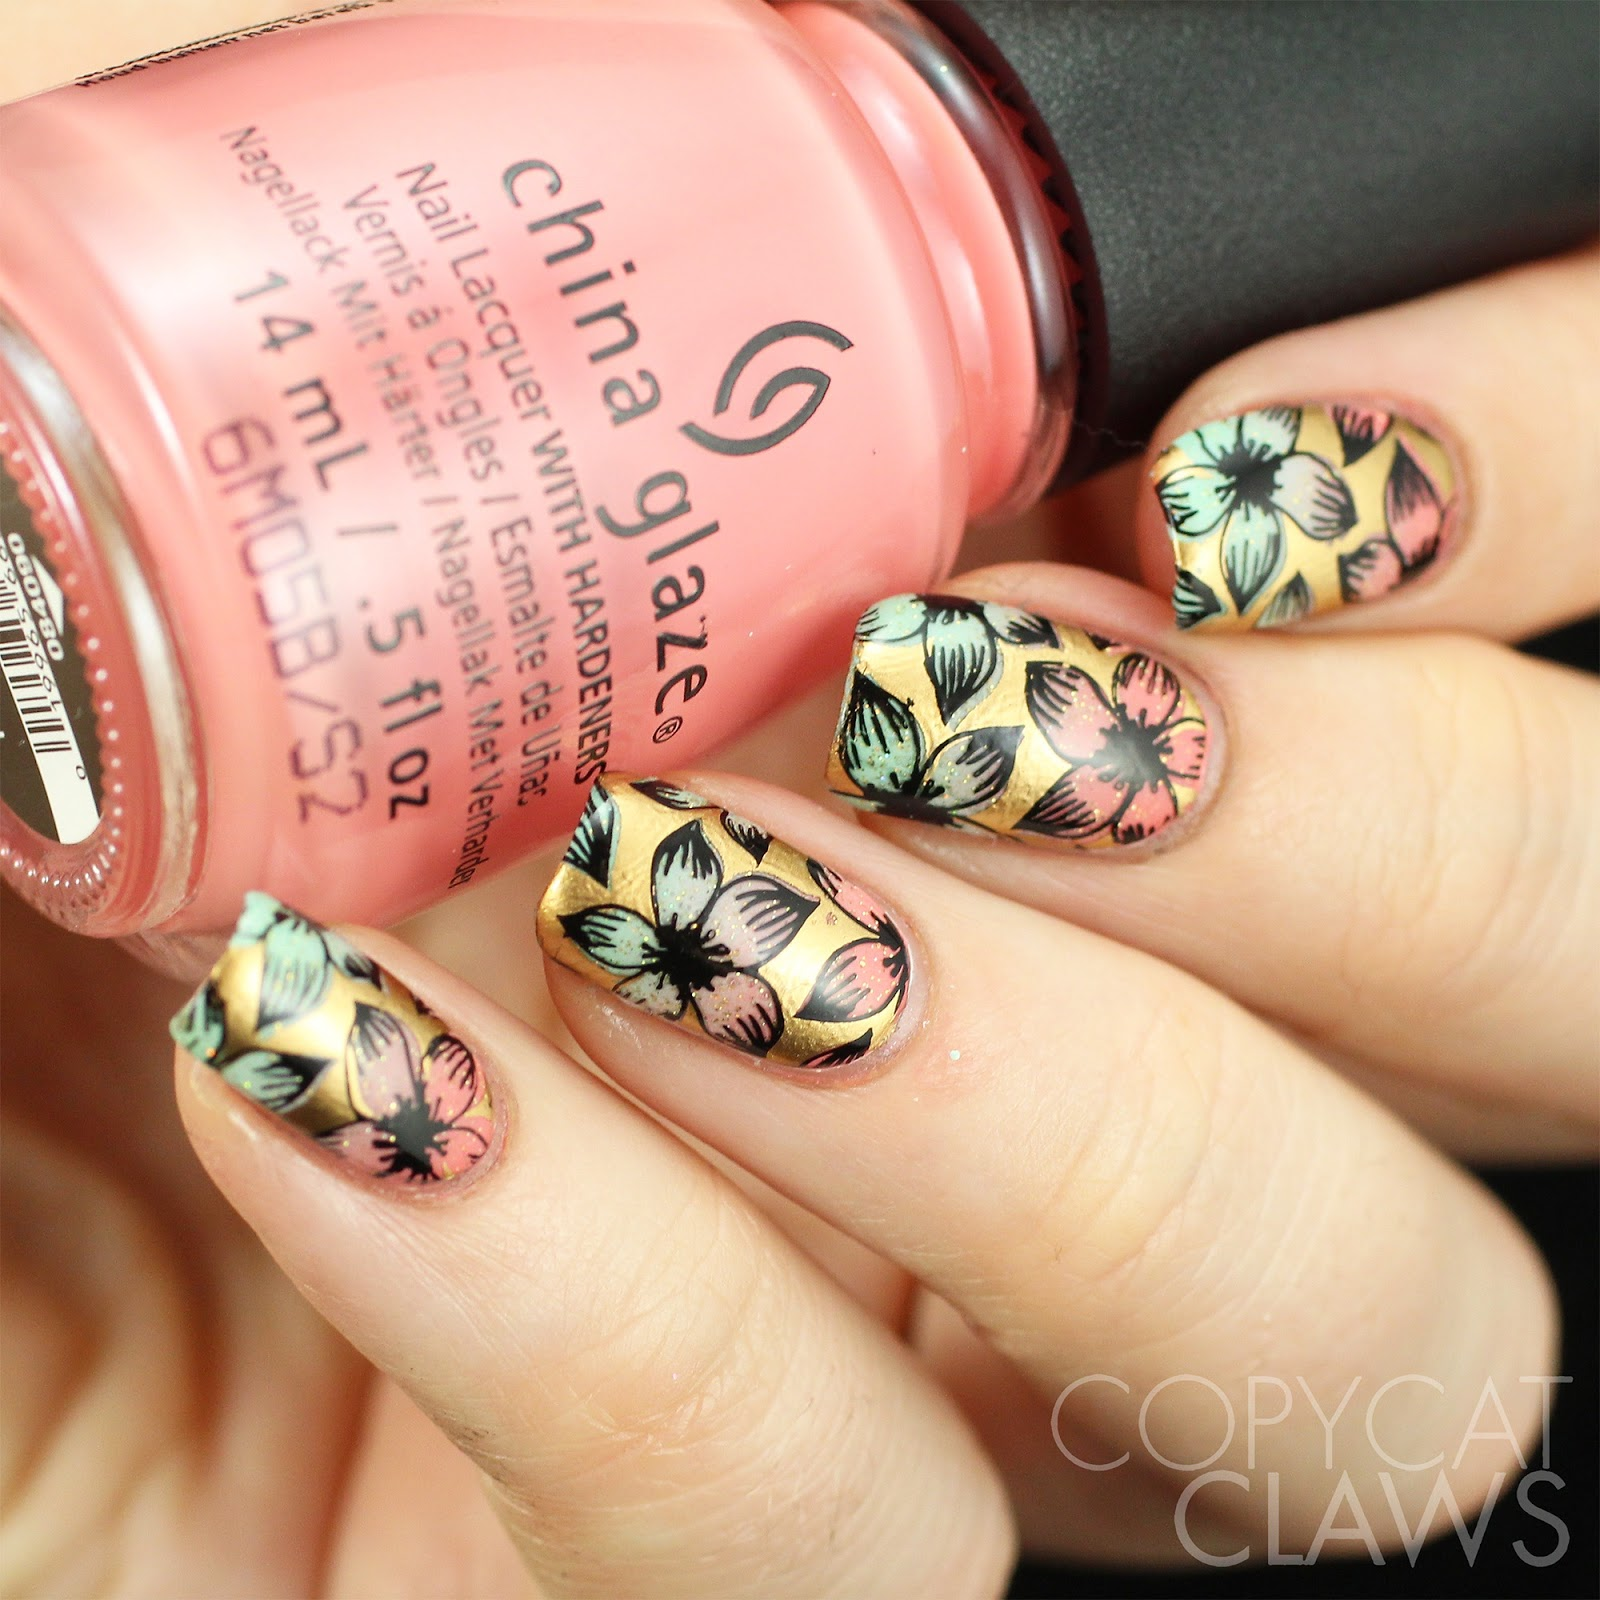 Copycat Claws Nail Challenge Collaborative Spring 1